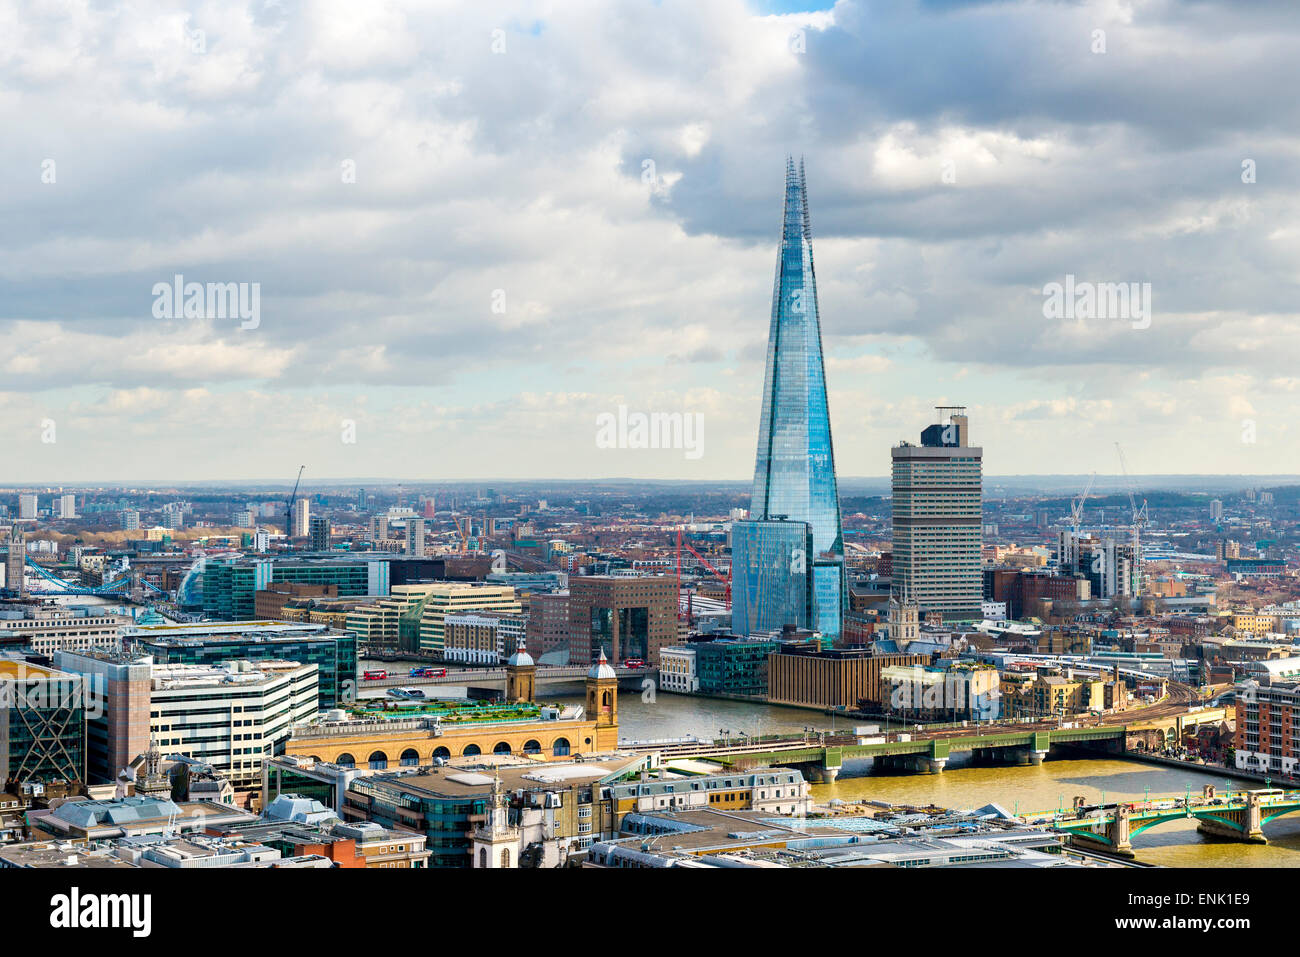 Le Shard, London, Angleterre, Royaume-Uni, Europe Photo Stock